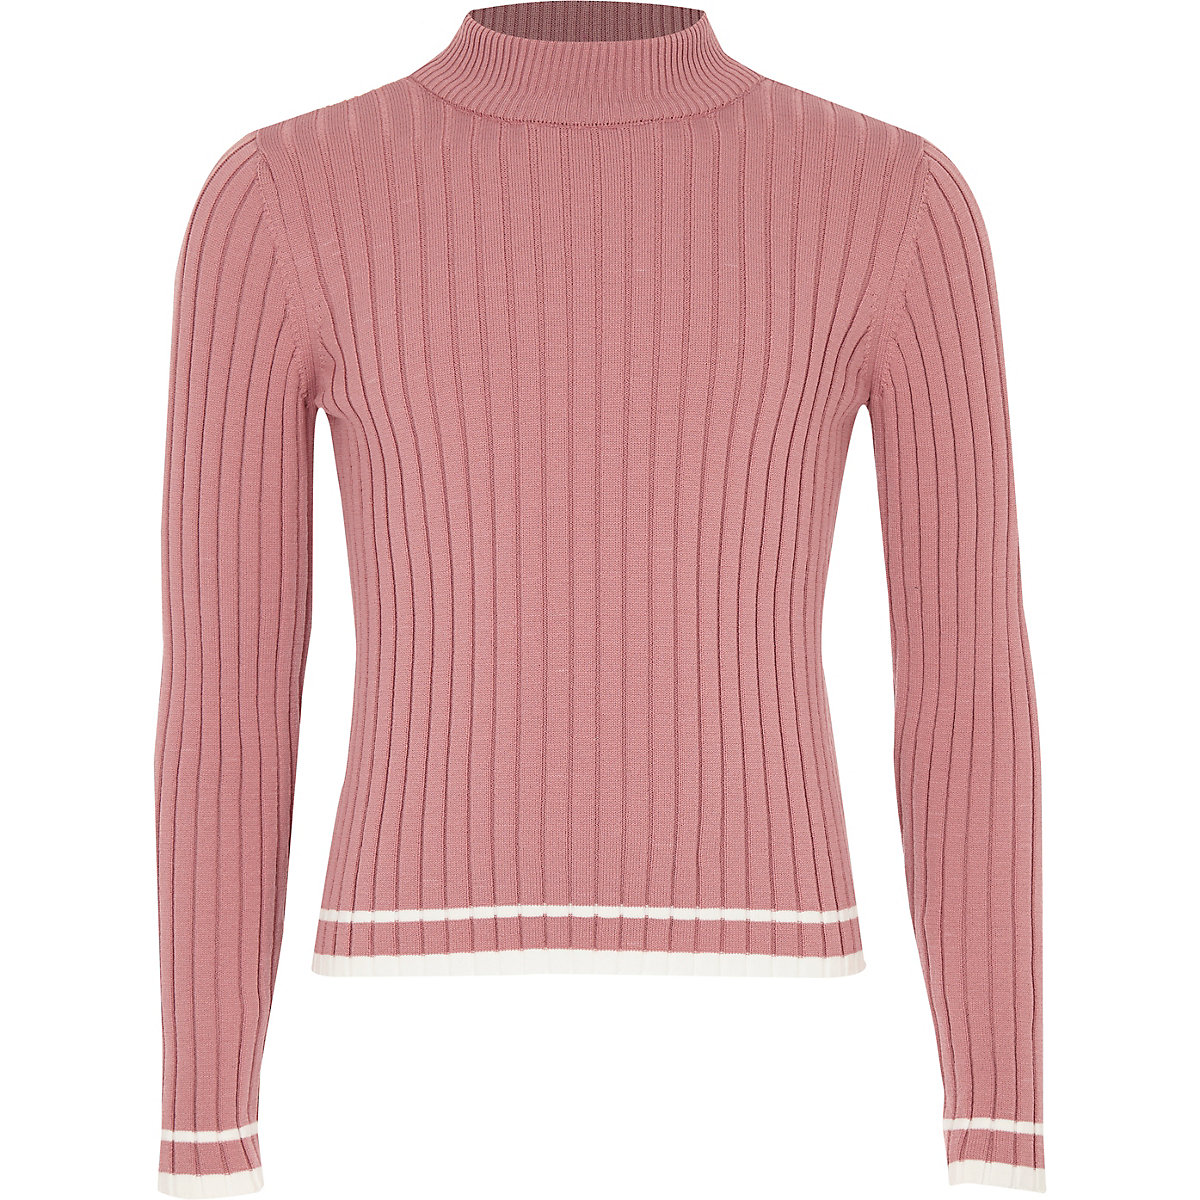 Girls pink ribbed tipped turtle neck sweater